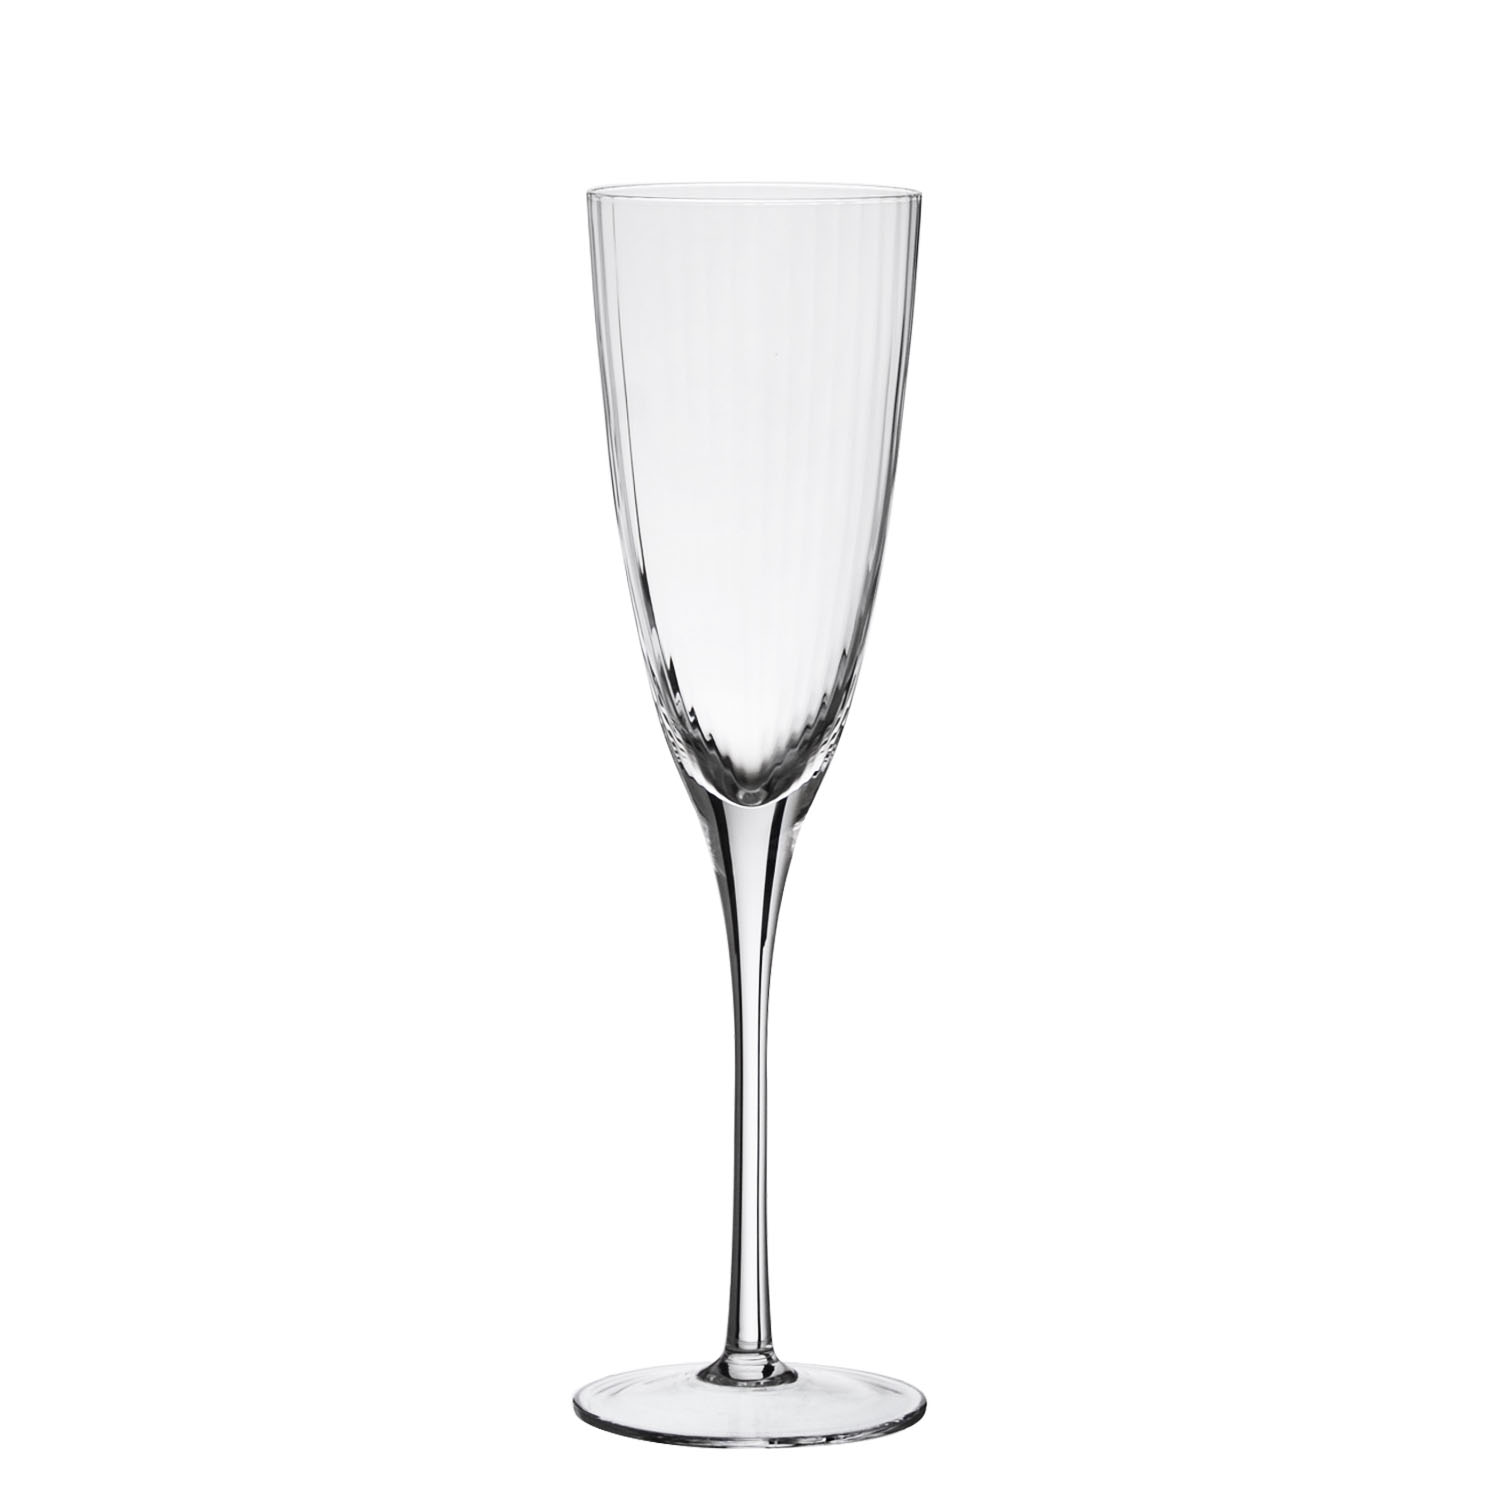 Samyo Personalized Wedding Champagne Flutes Engraved Flutes for Bride and Groom Gift for Customized Wedding Gift